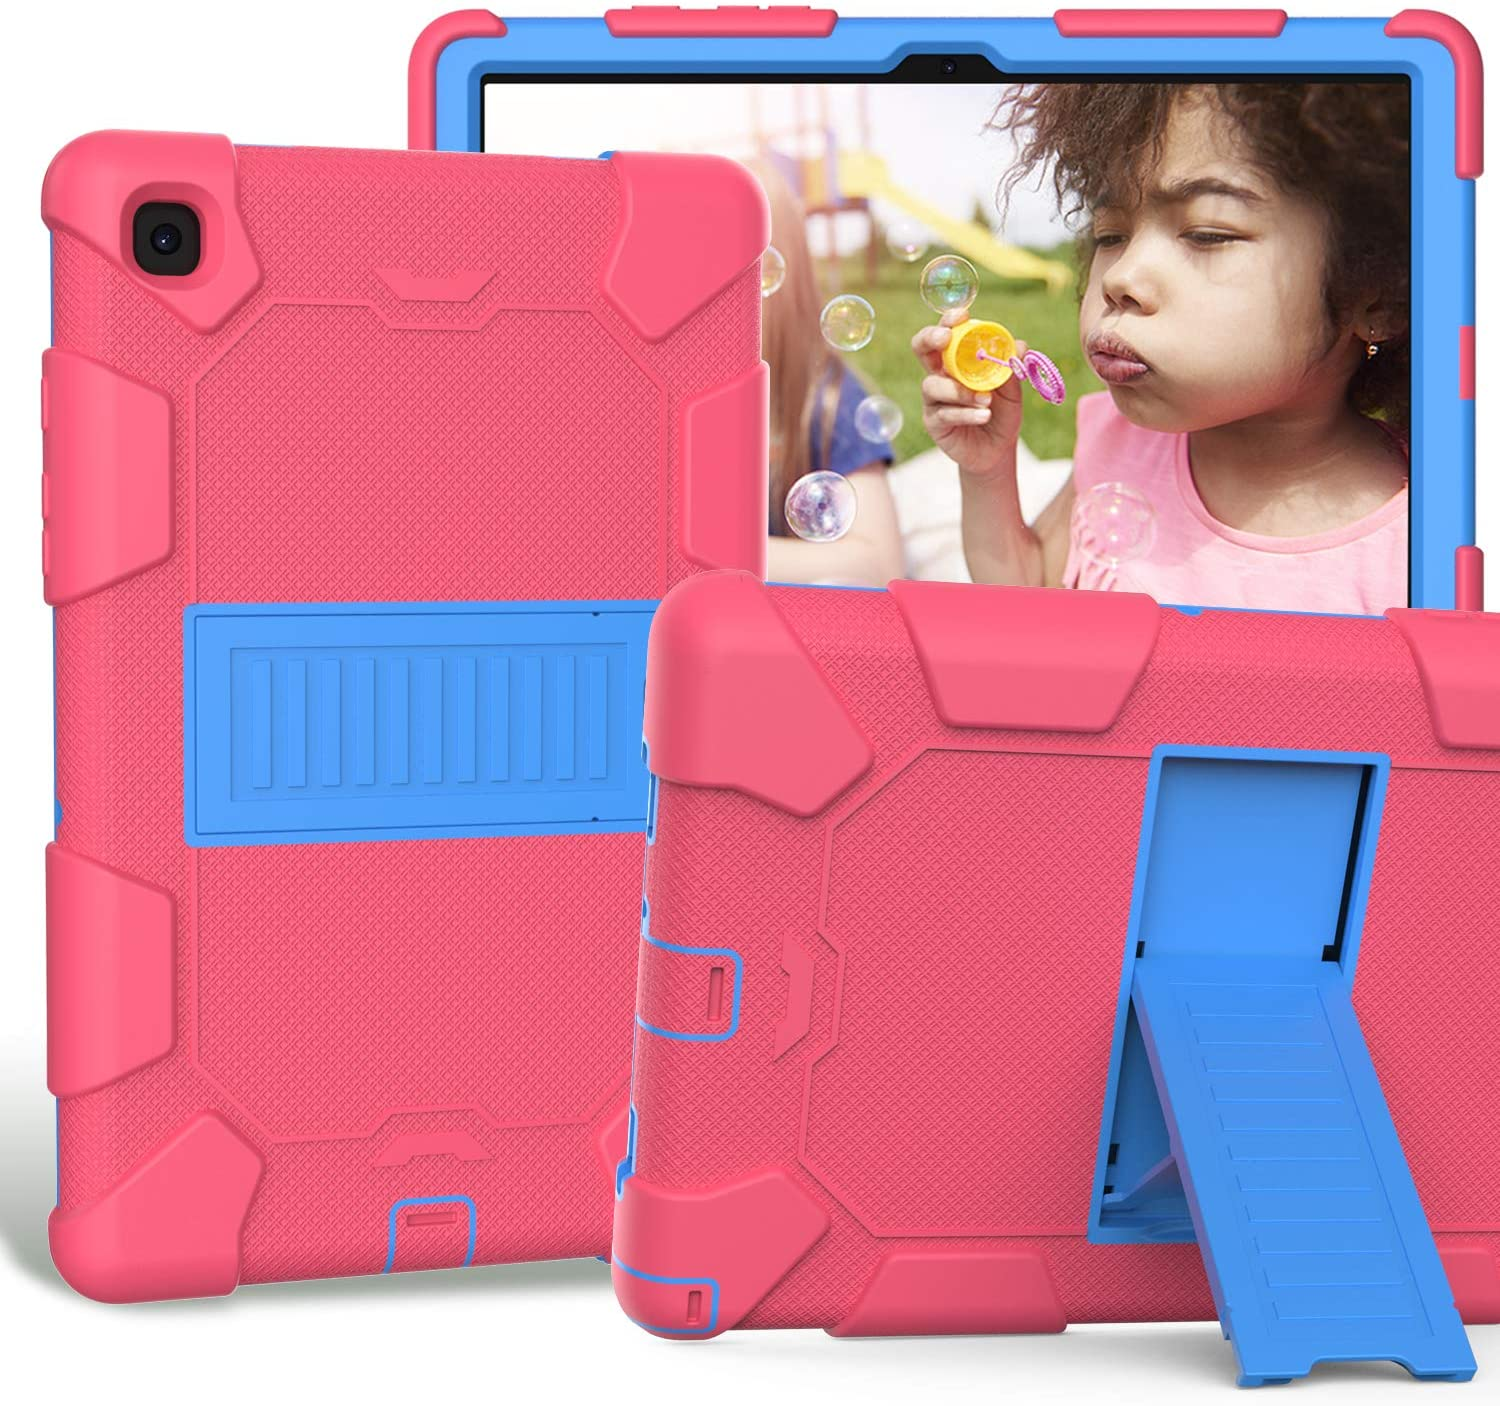 Case for Samsung Galaxy Tab A 7.0 (10.4-inch, 2020 Release), CASZONE 3 Layer Heavy Duty Rugged Shockproof Anti-Slip Silicone Protective Cover with Folding Kickstand for Kids/Students - Rosy+Blue